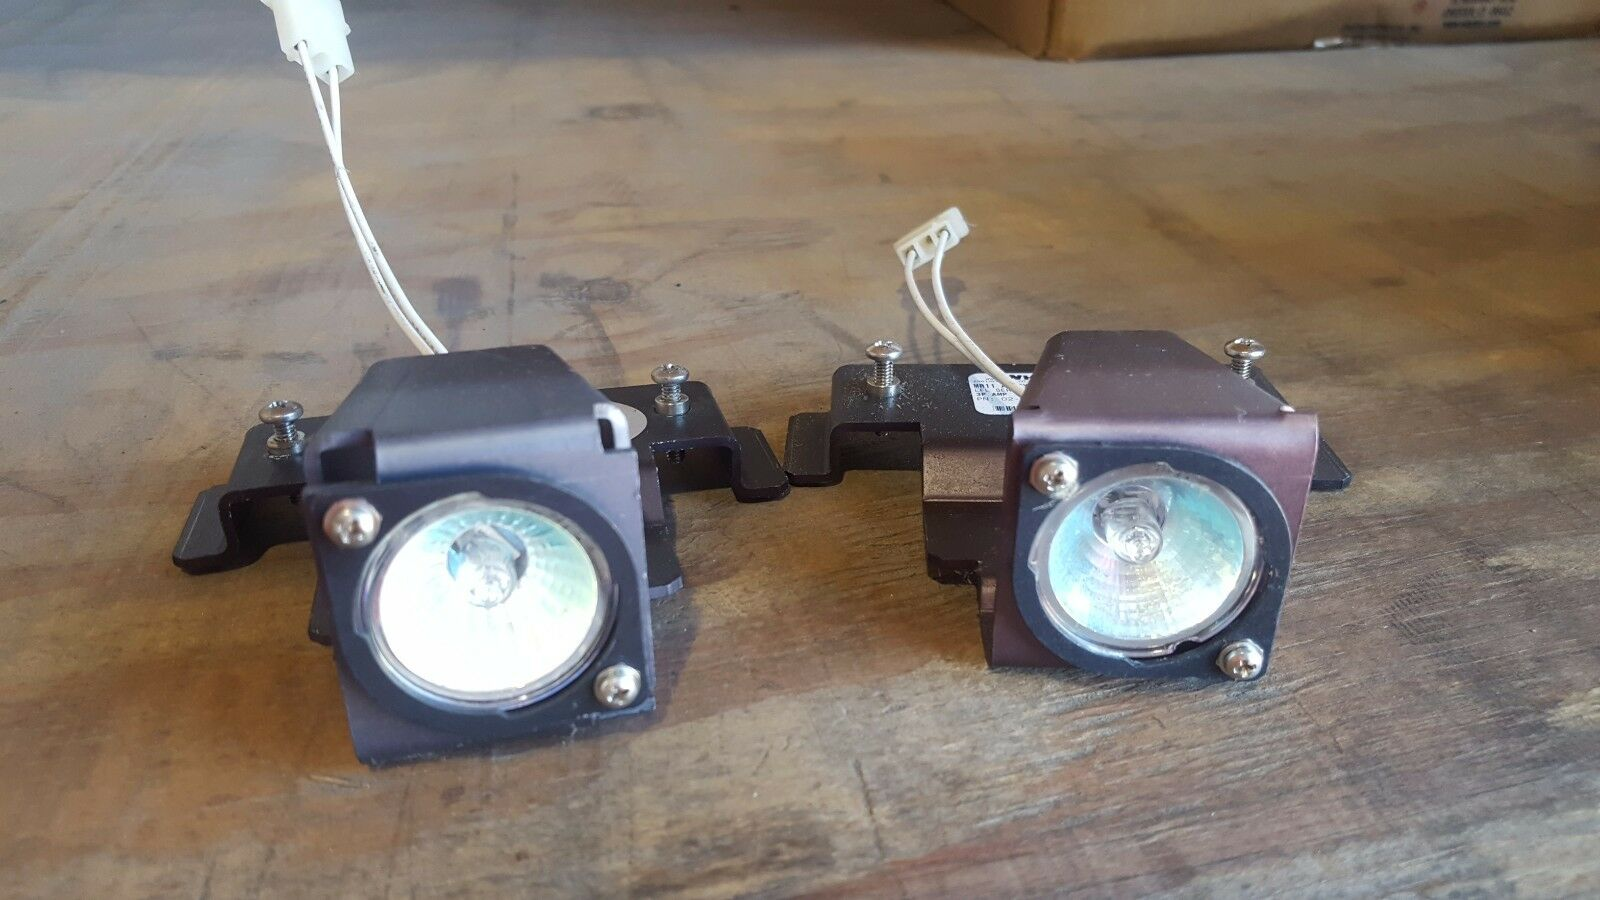 Whelen liberty mr11 halogen alley lights 12vdc ebay picture 1 of 6 sciox Gallery